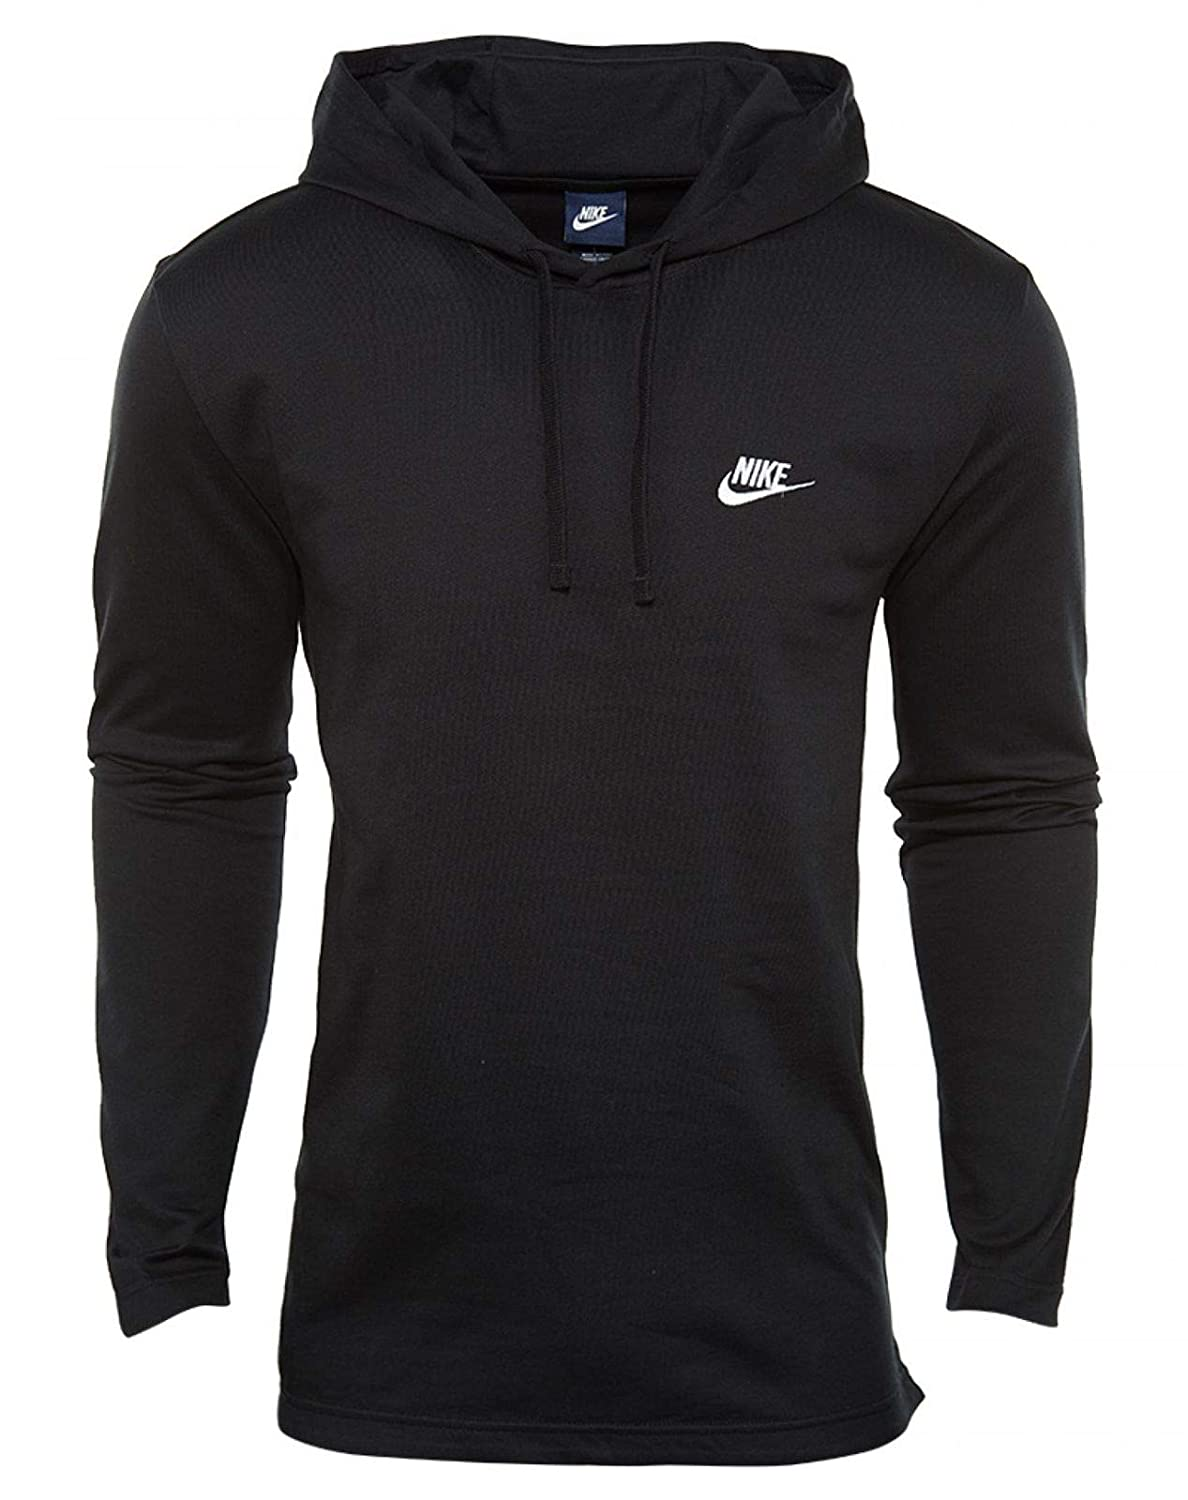 2e40681ee4c6 Amazon.com  NIKE Sportswear Men s Pullover Club Hoodie  Sports   Outdoors